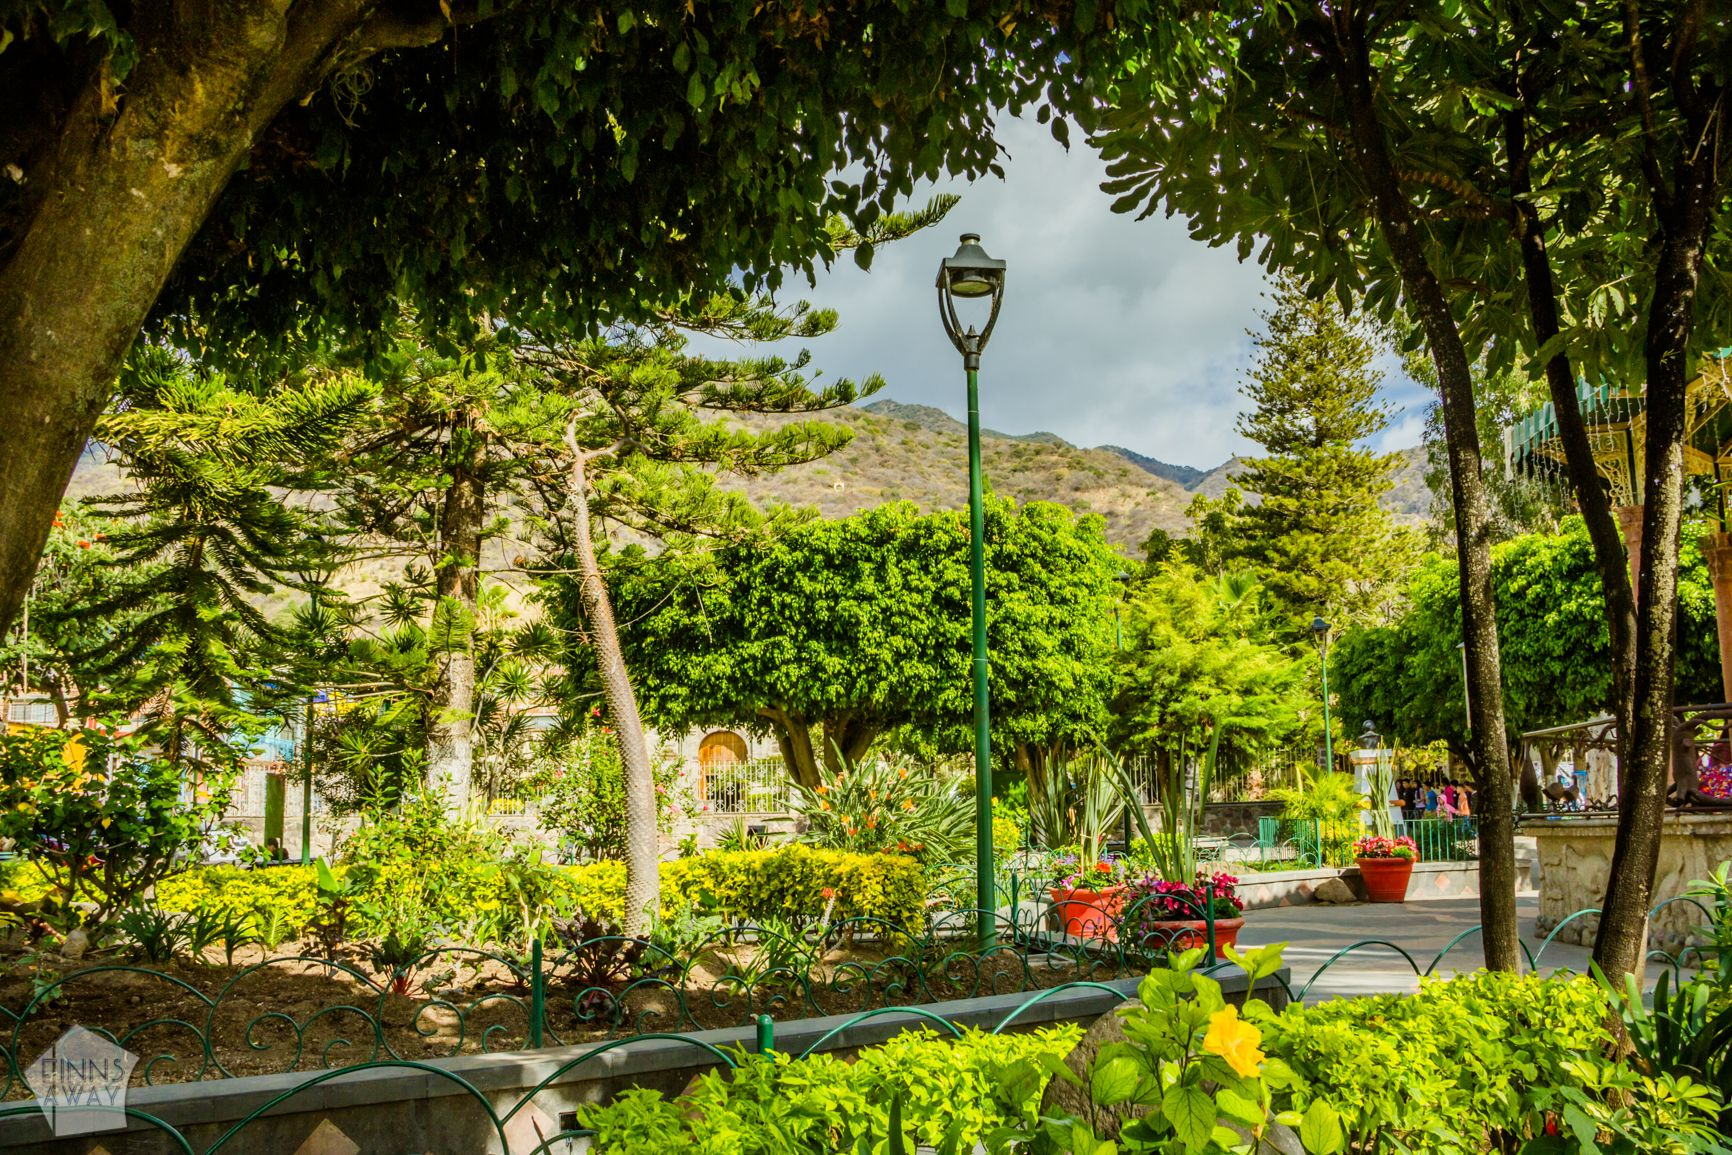 Ajijic, Lake Chapala, Mexico | FinnsAway Travel Blog